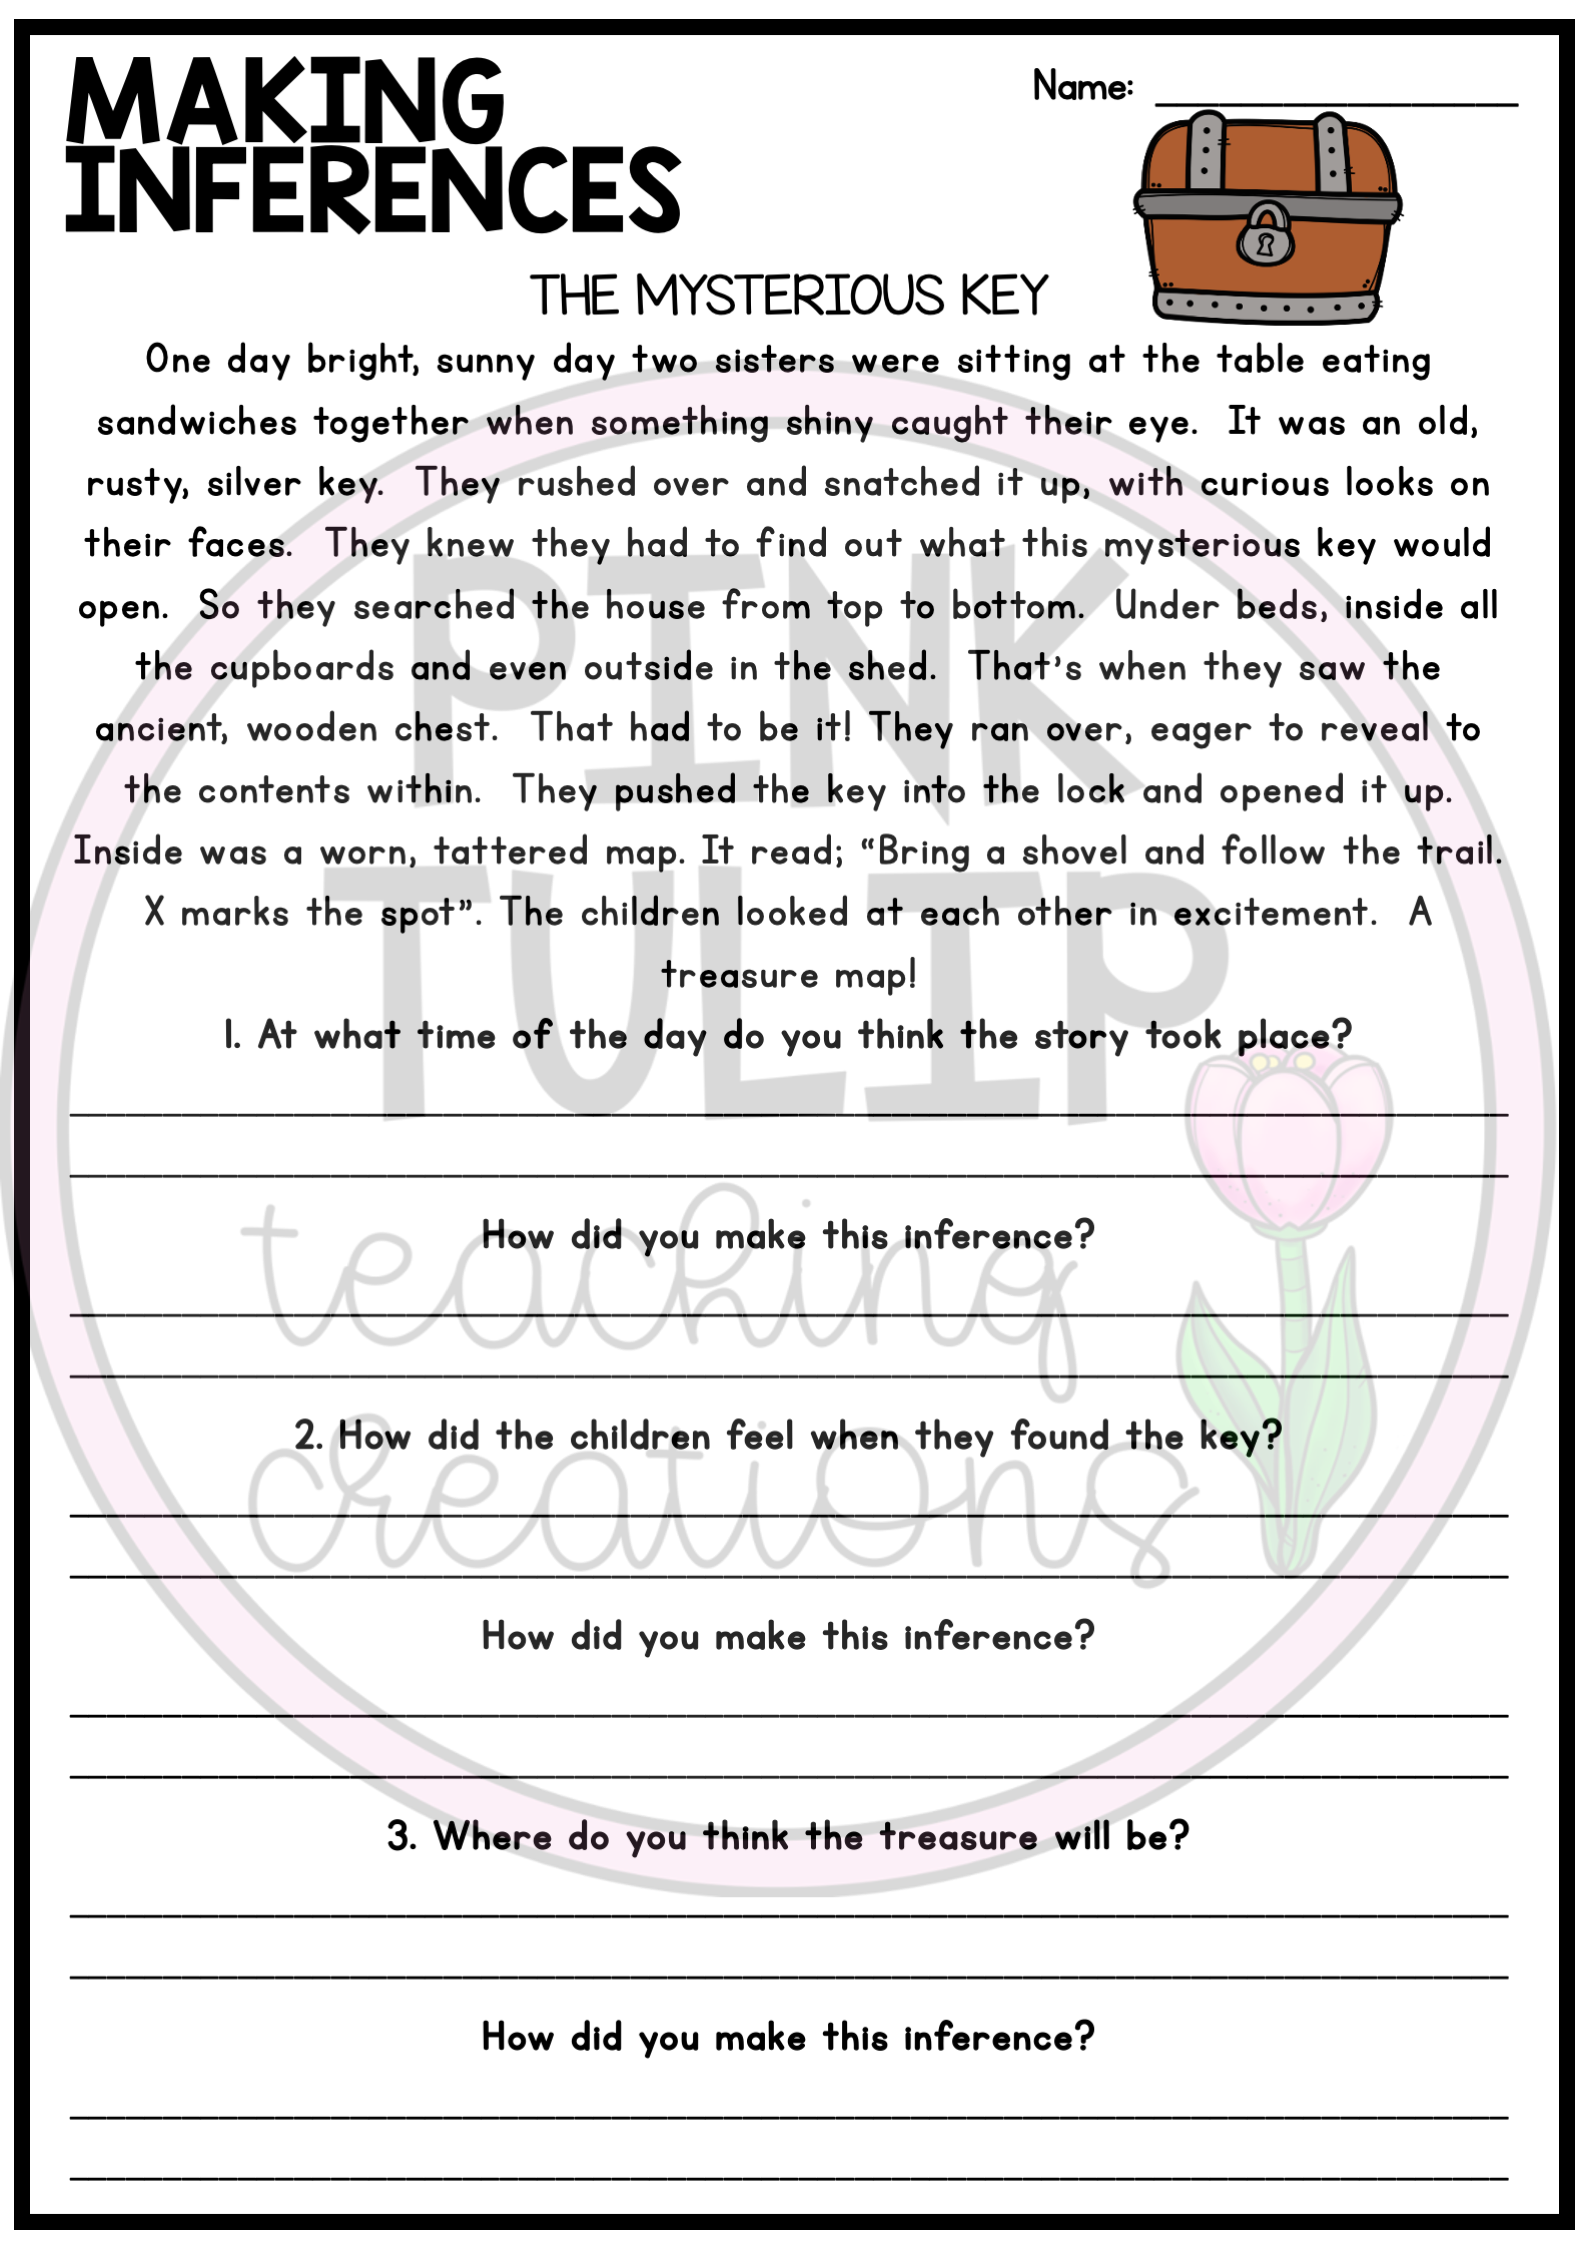 Making Inferences Worksheets 7th Grade   Printable Worksheets and  Activities for Teachers [ 2249 x 1589 Pixel ]